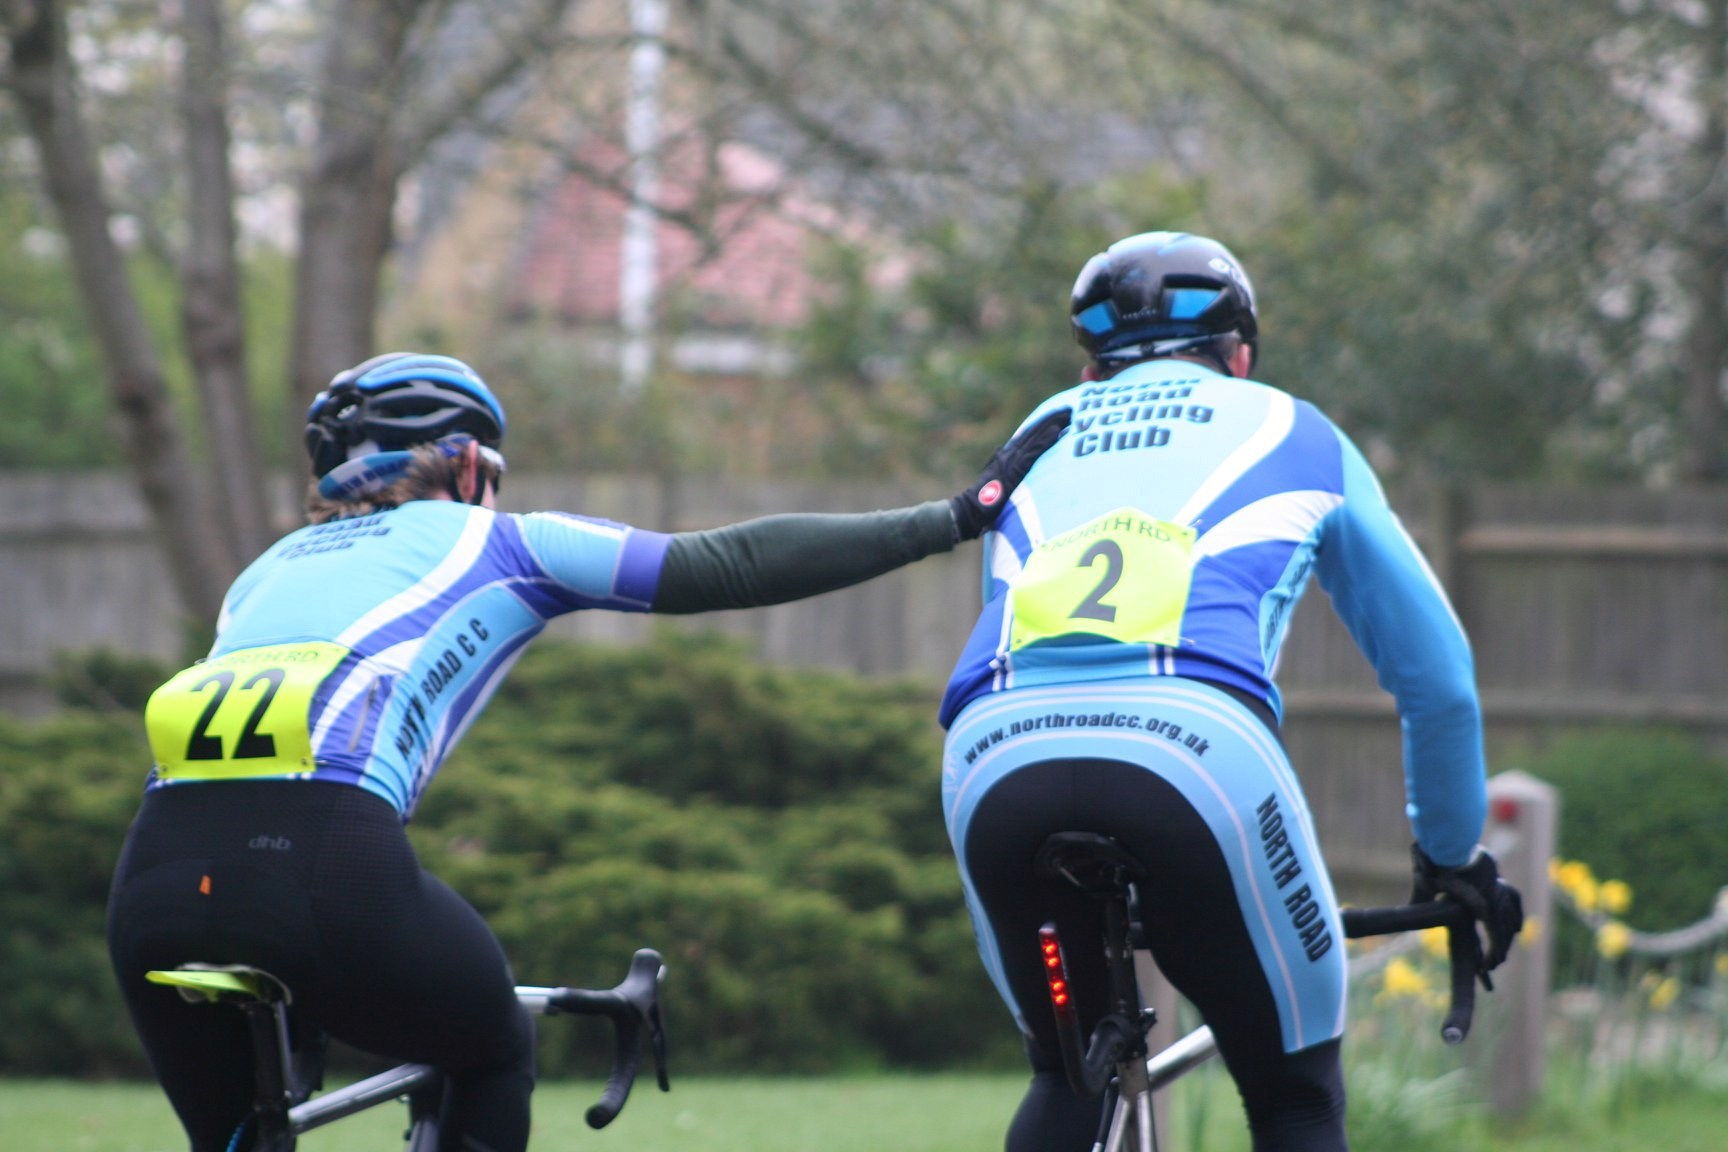 North Road CC Brickendon Two-Up 2019